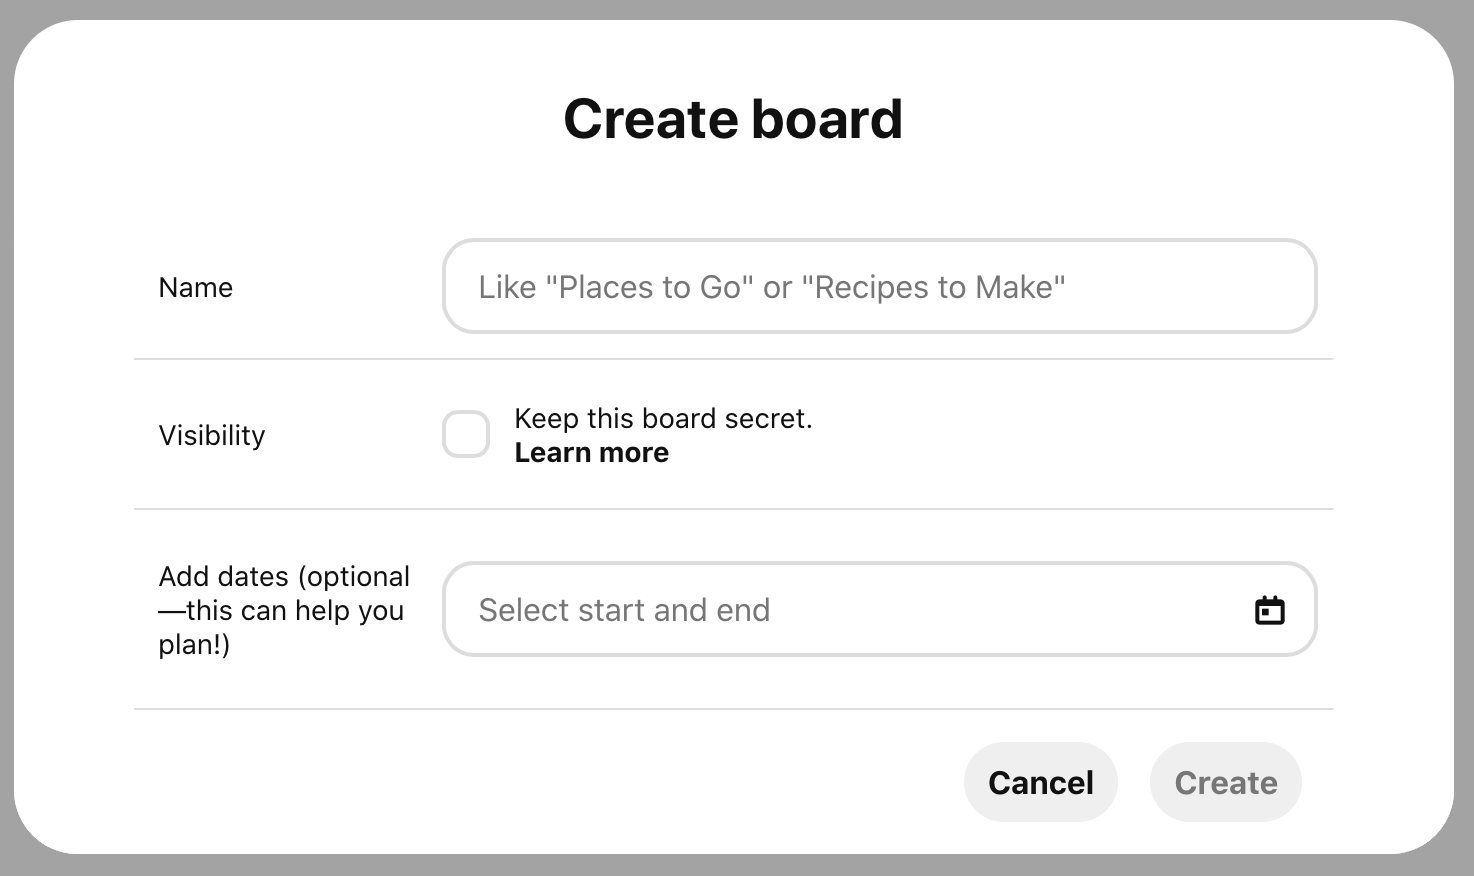 Fill information about your new board